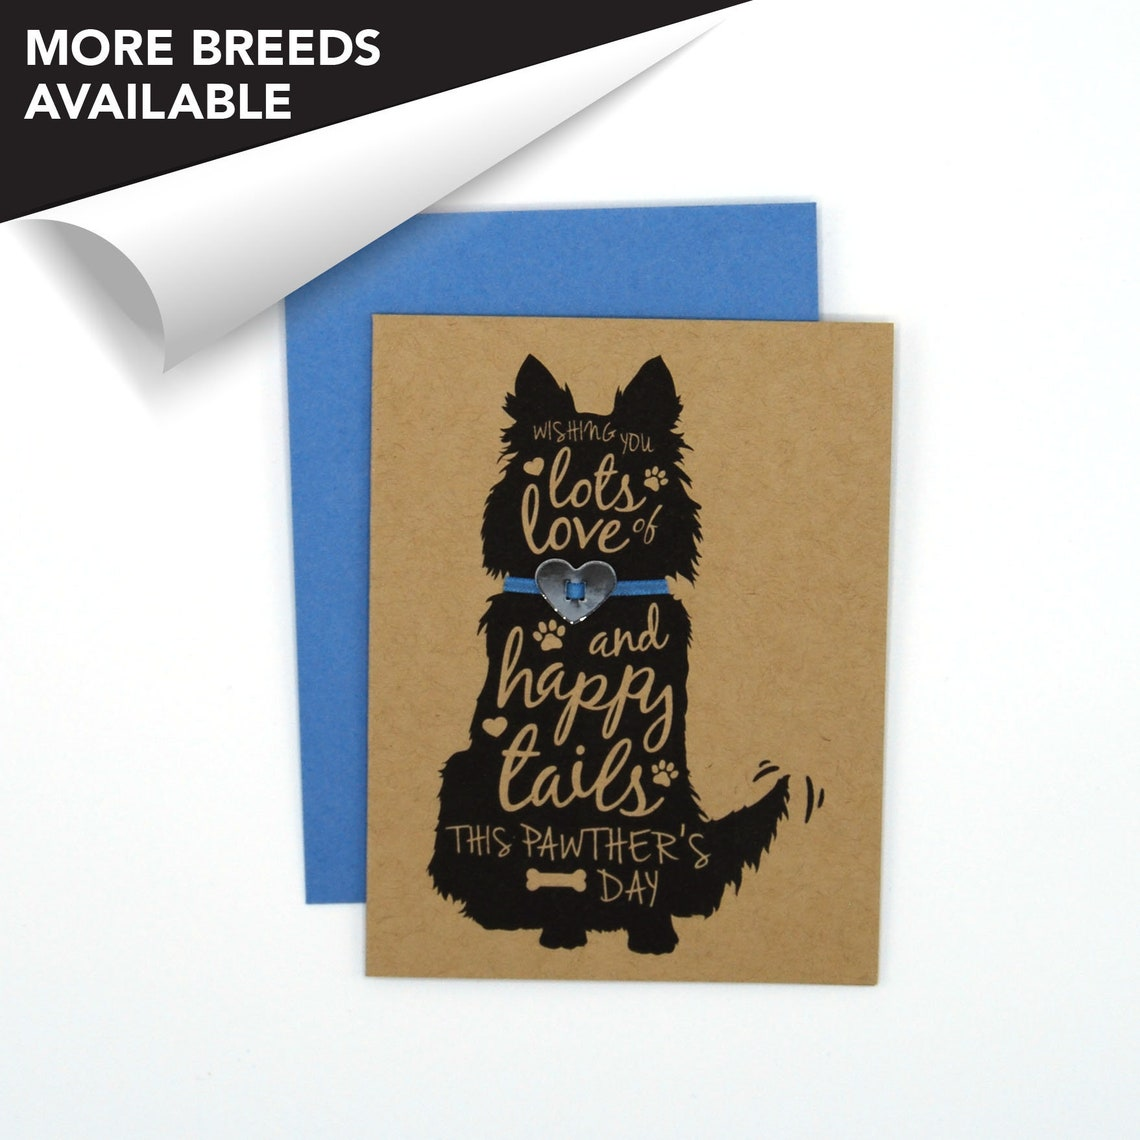 collie border collie dog fathers day card pawther's  etsy